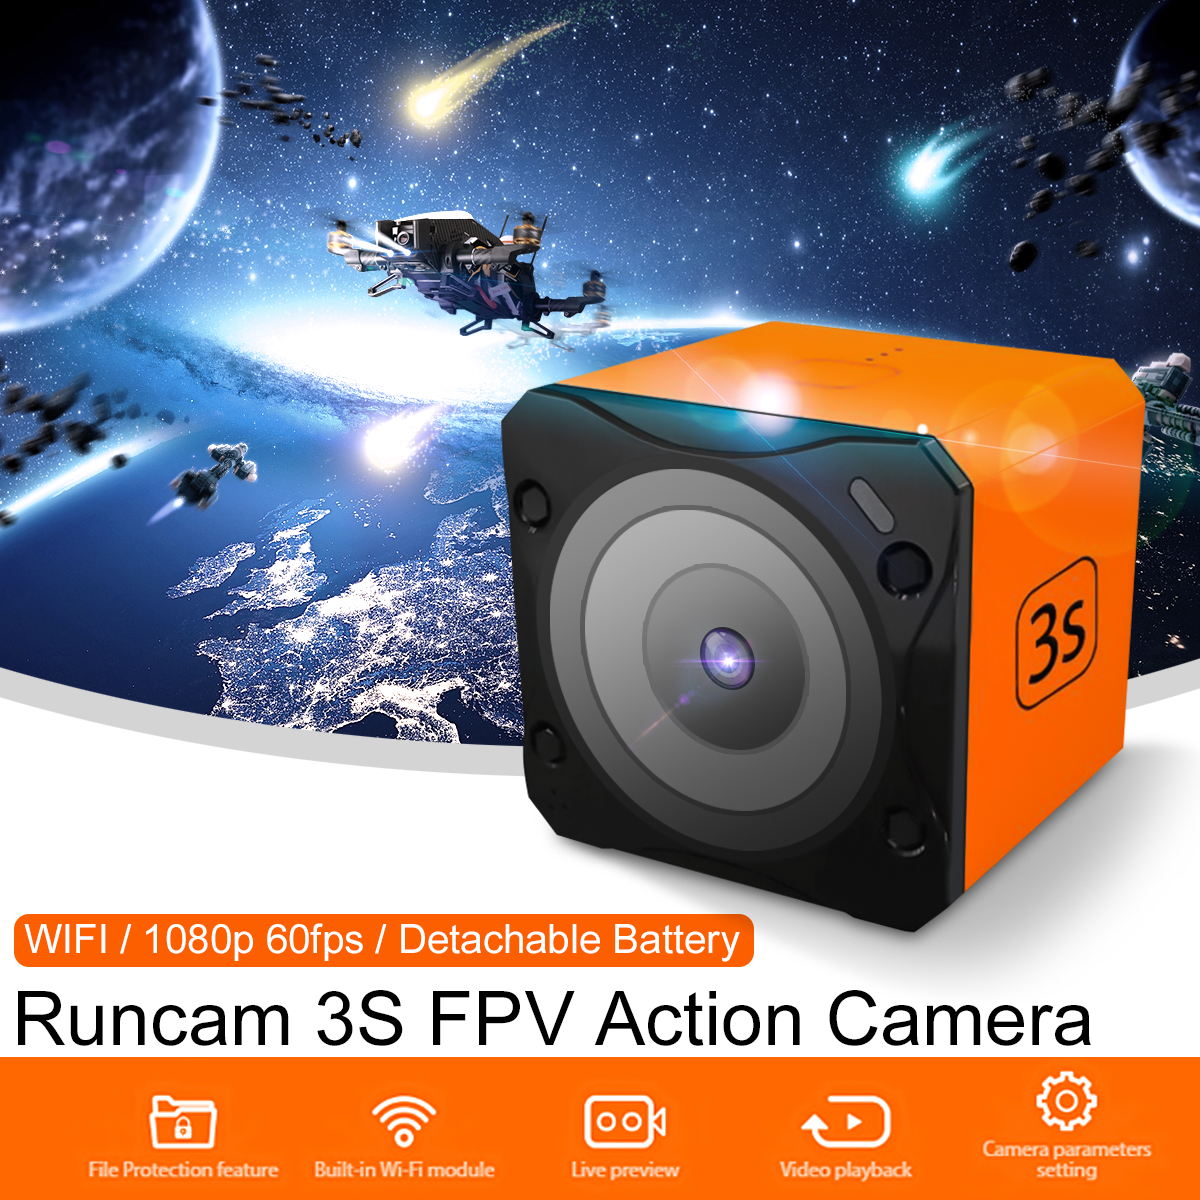 Runcam 3S WIFI NTSC/PAL 1080p 60fps WDR 160 Degree FPV Action Camera Detachable Battery for RC Models VS Runcam3 runcam 3s wifi 1080p 60fps fpv action camera for rc racing drone